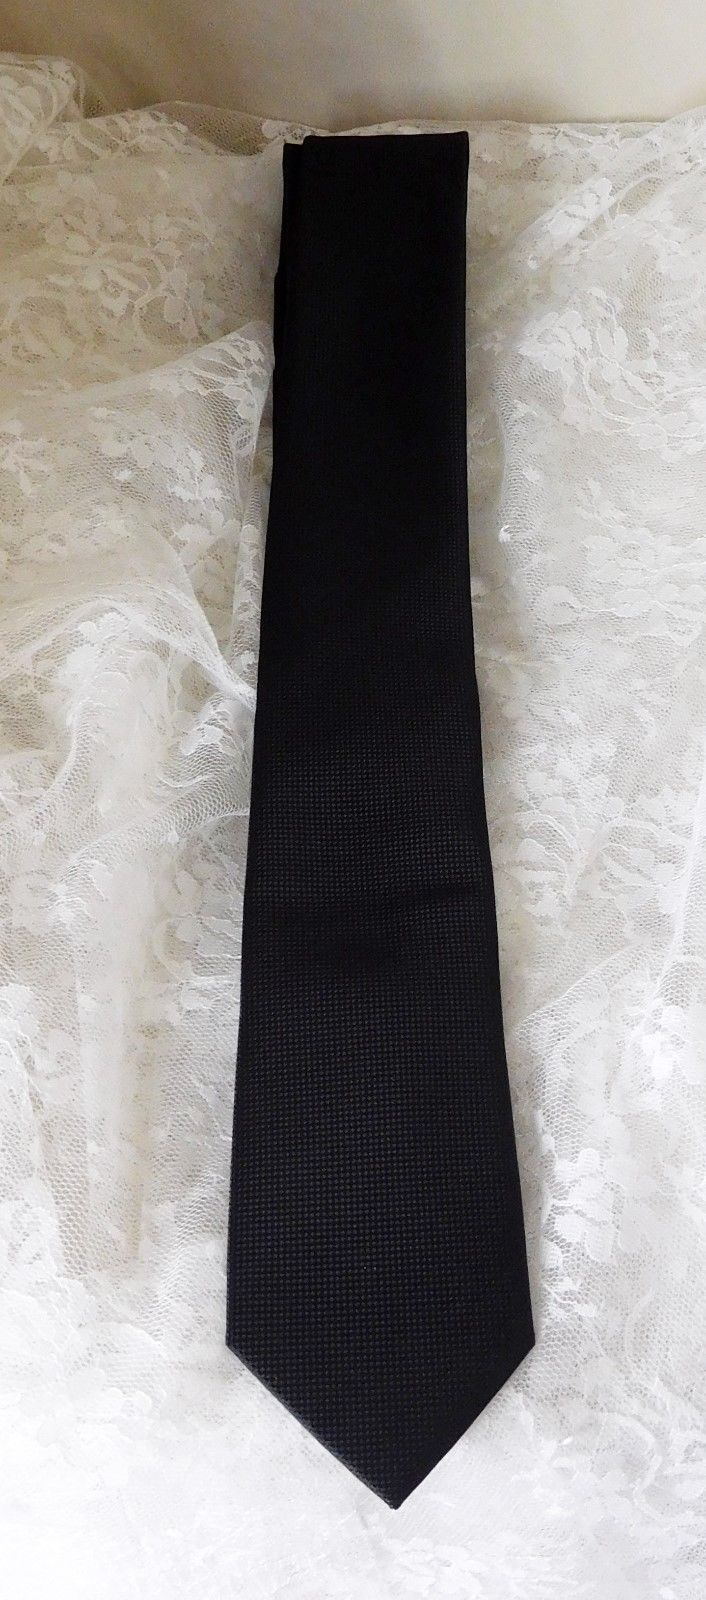 Primary image for Geoffrey Beene Men's Neck Tie - 100% Polyester - Solid Black - EUC